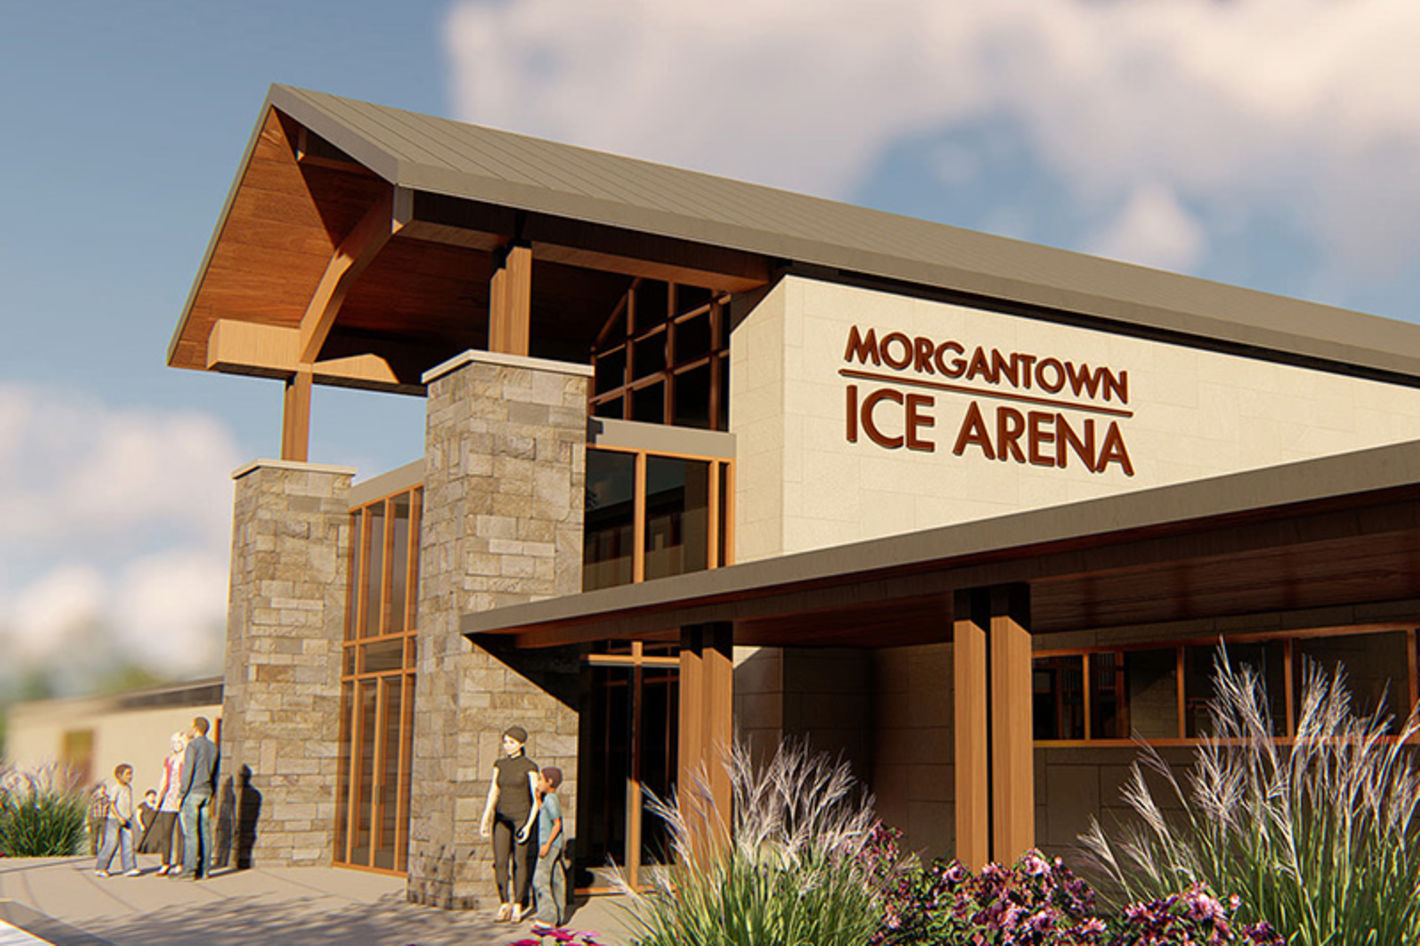 Morgantown Ice Arena - Photo